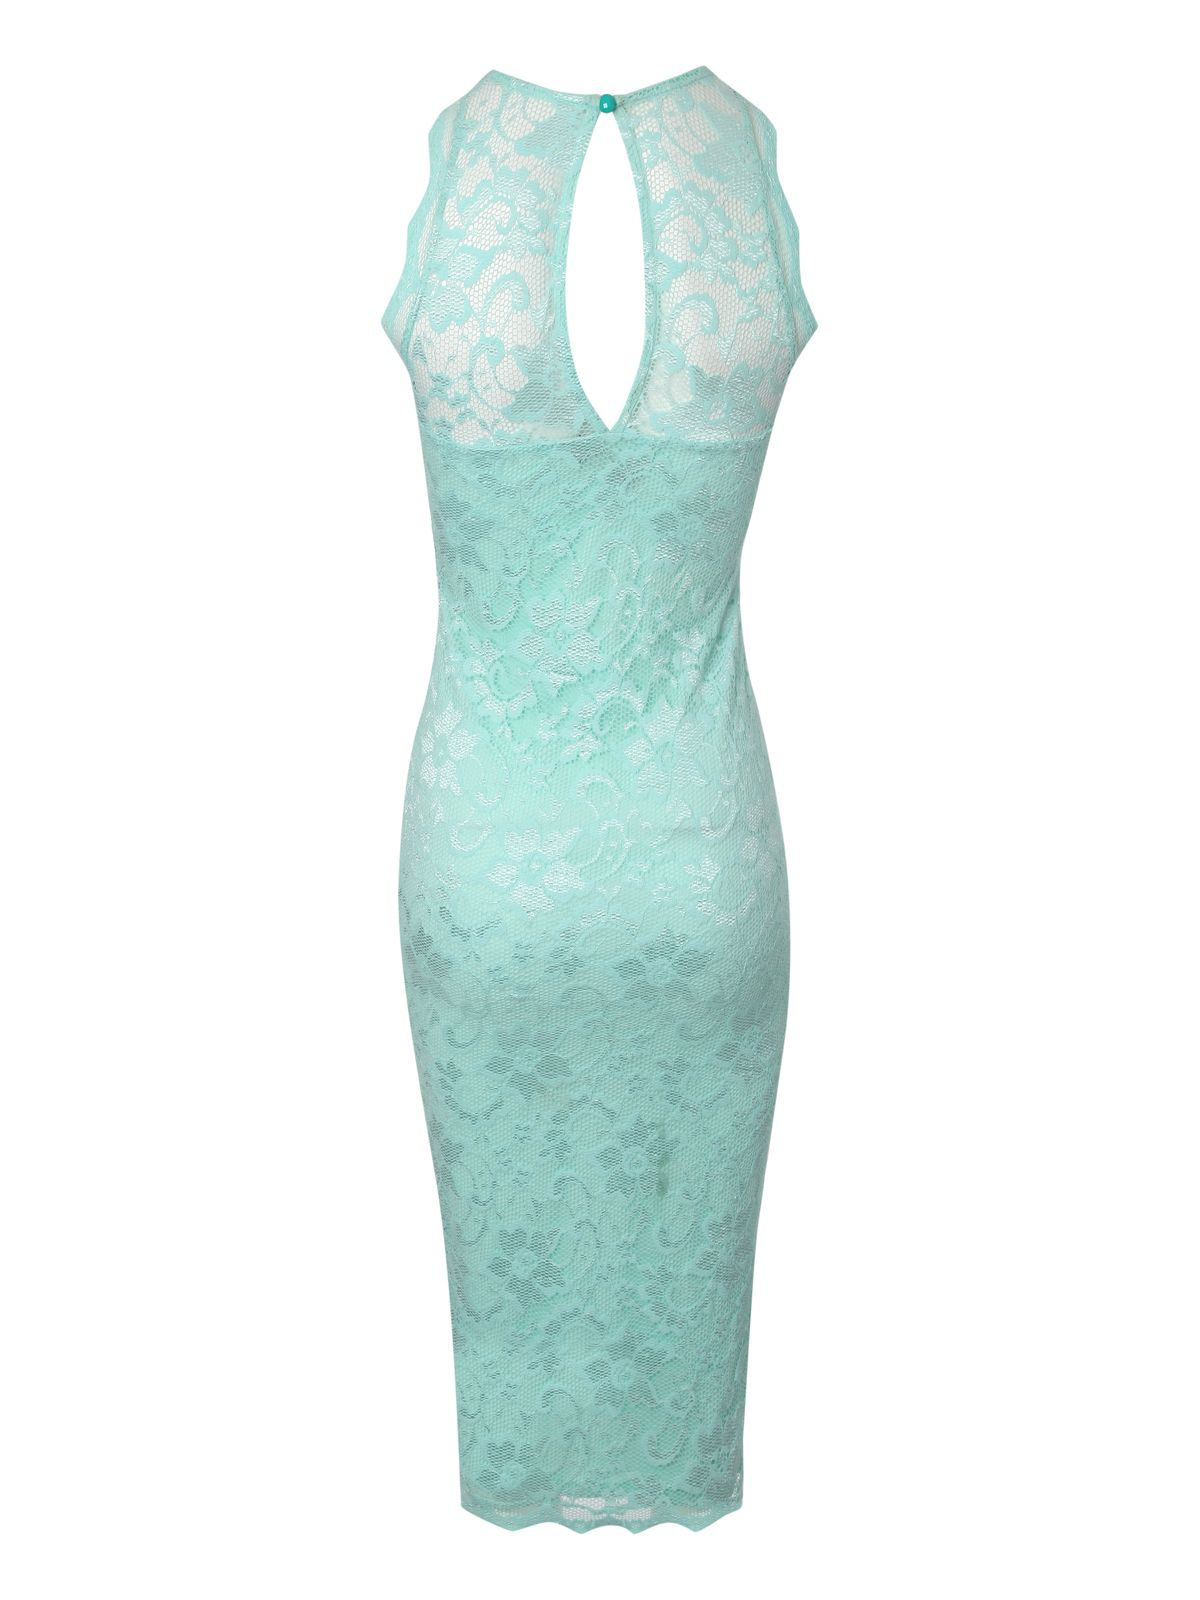 High neck lace bodycon dress